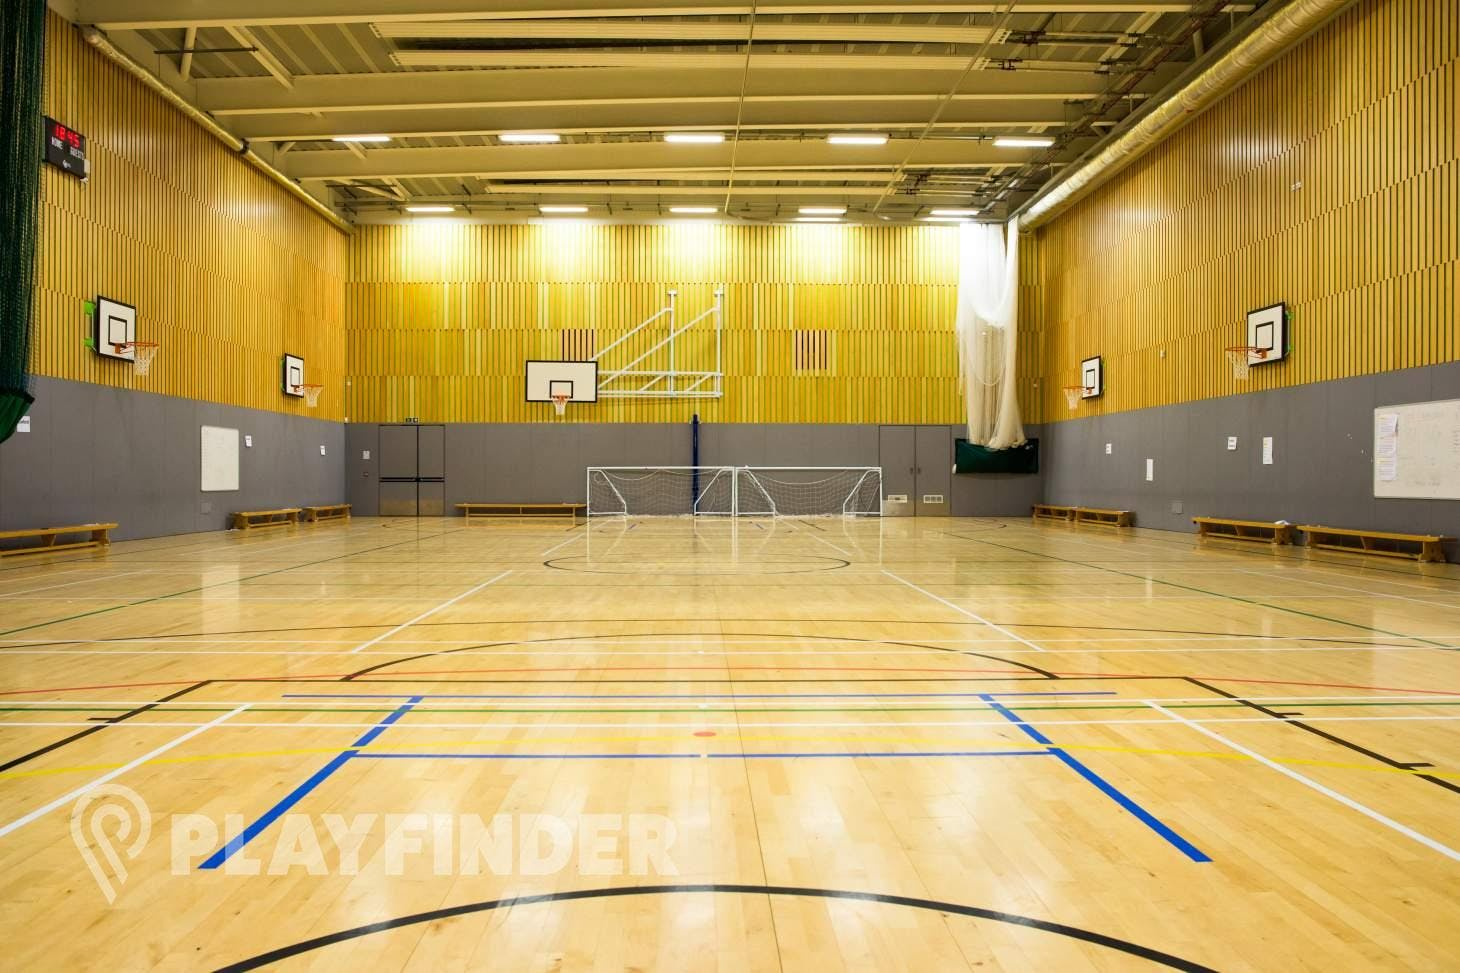 Isaac Newton Academy Sports hall space hire